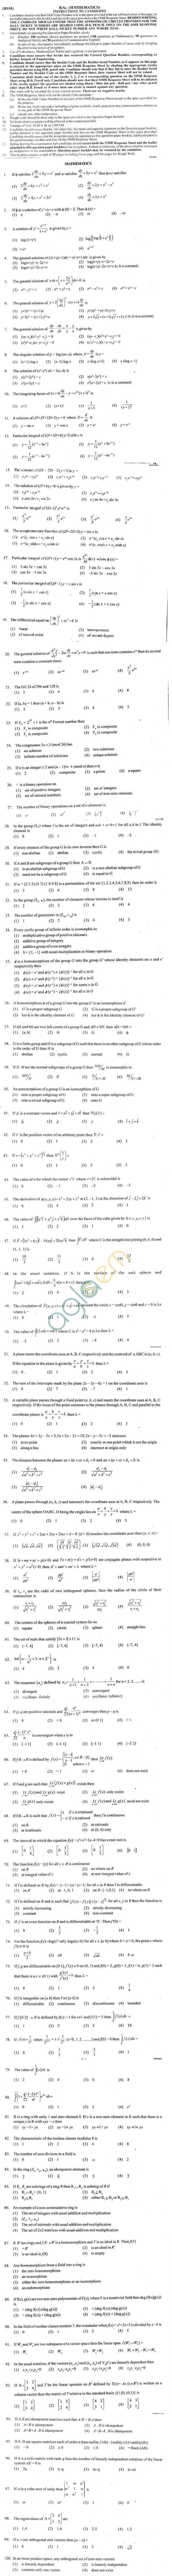 ECET 2012 Question Paper with Answers - BSC – Mathematics